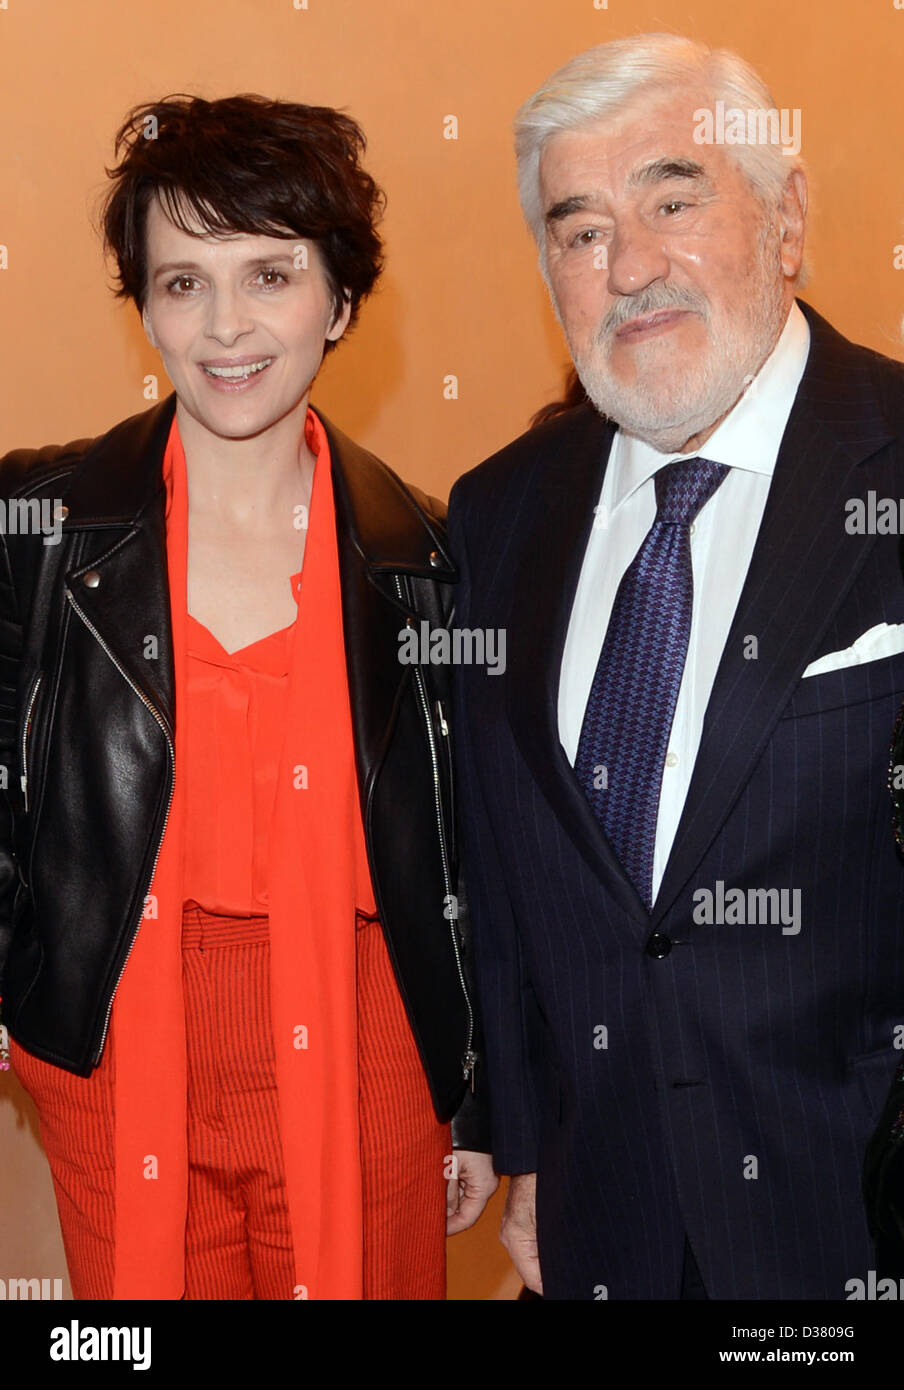 French actress Juliette Binoche and German actor Mario Adorf attend the reception 'Soiree francaise du cinema' - Stock Image